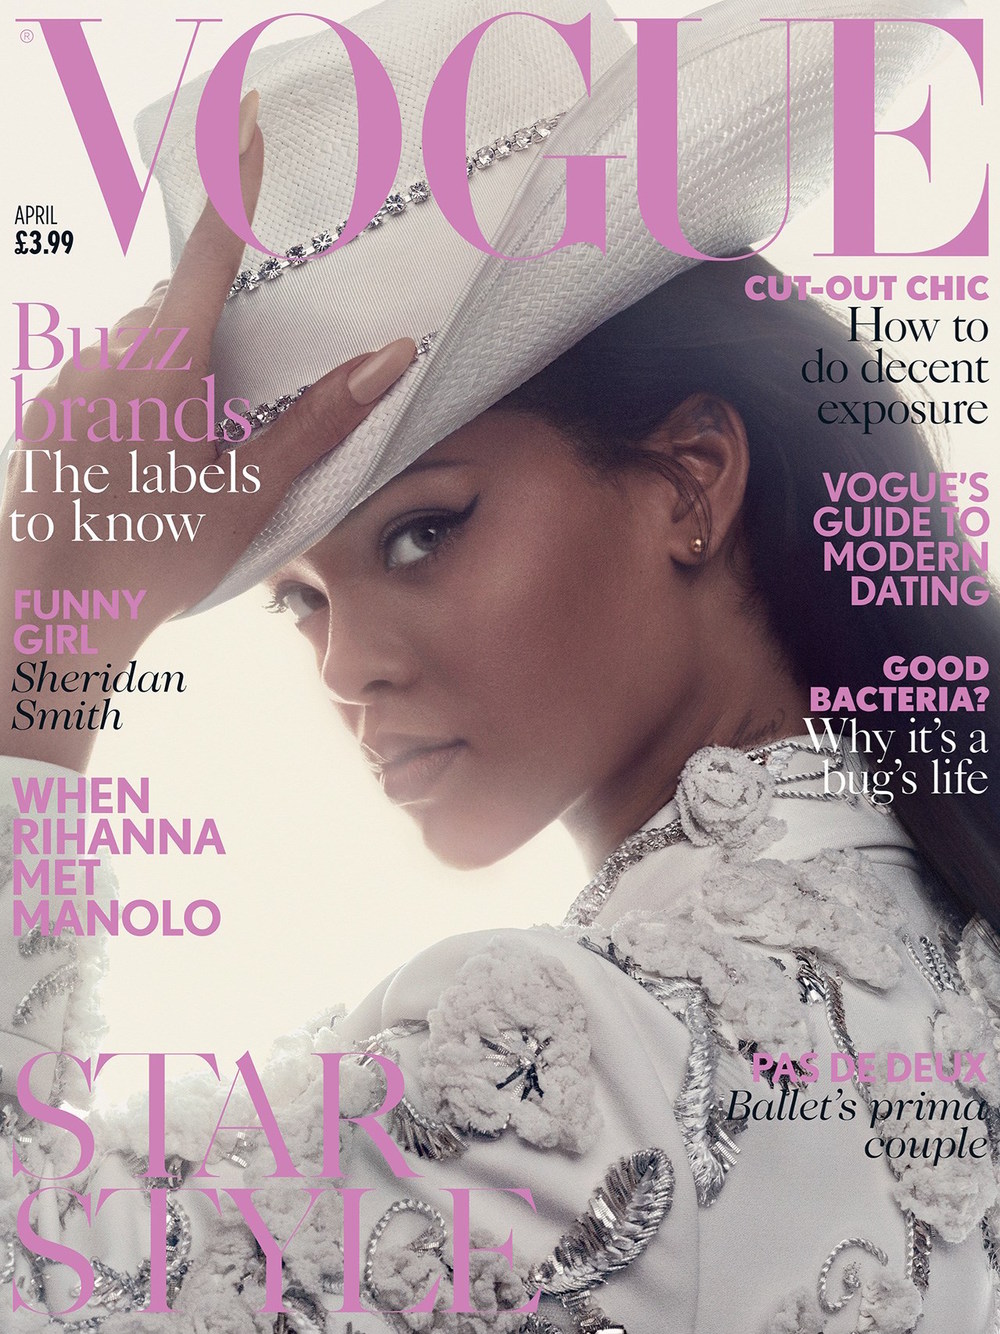 Rihanna wearing Crystal encrusted Cowboy Hat on the cover of British Vogue, April 2016